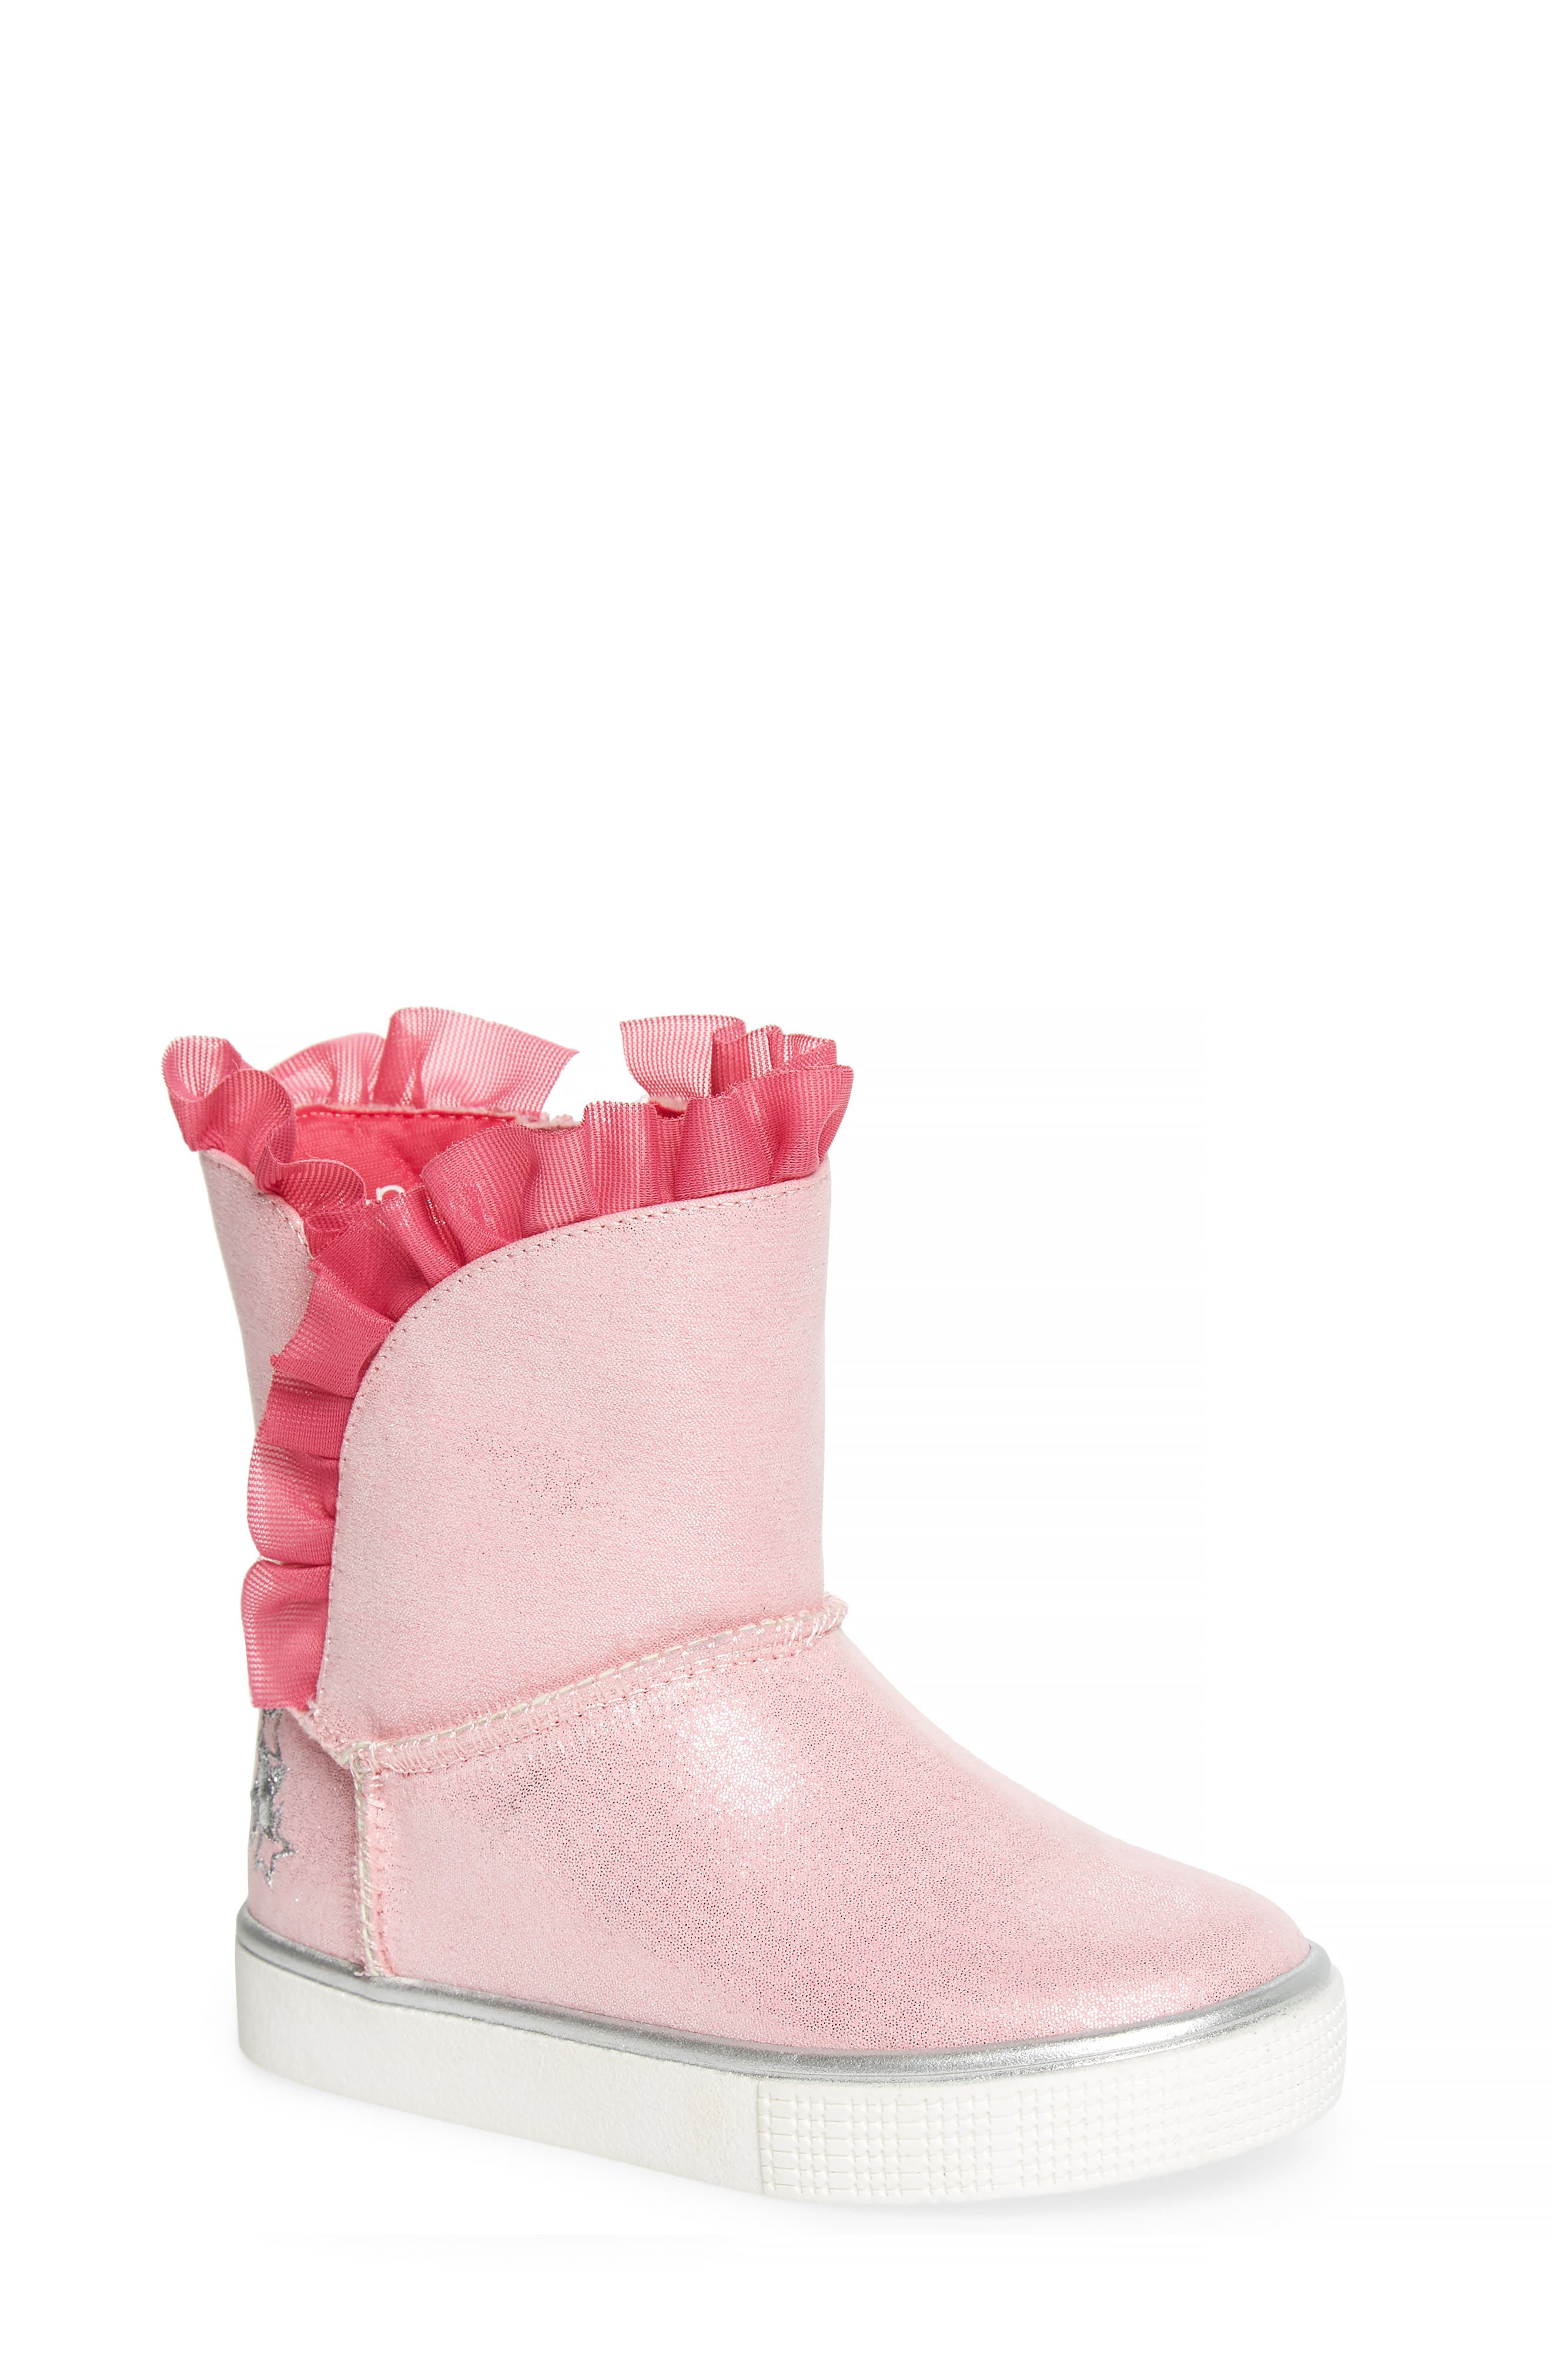 WellieWishers from American Girl Emerson Tulle Sneaker Boot (Walker, Toddler, Little Kid & Big Kid)